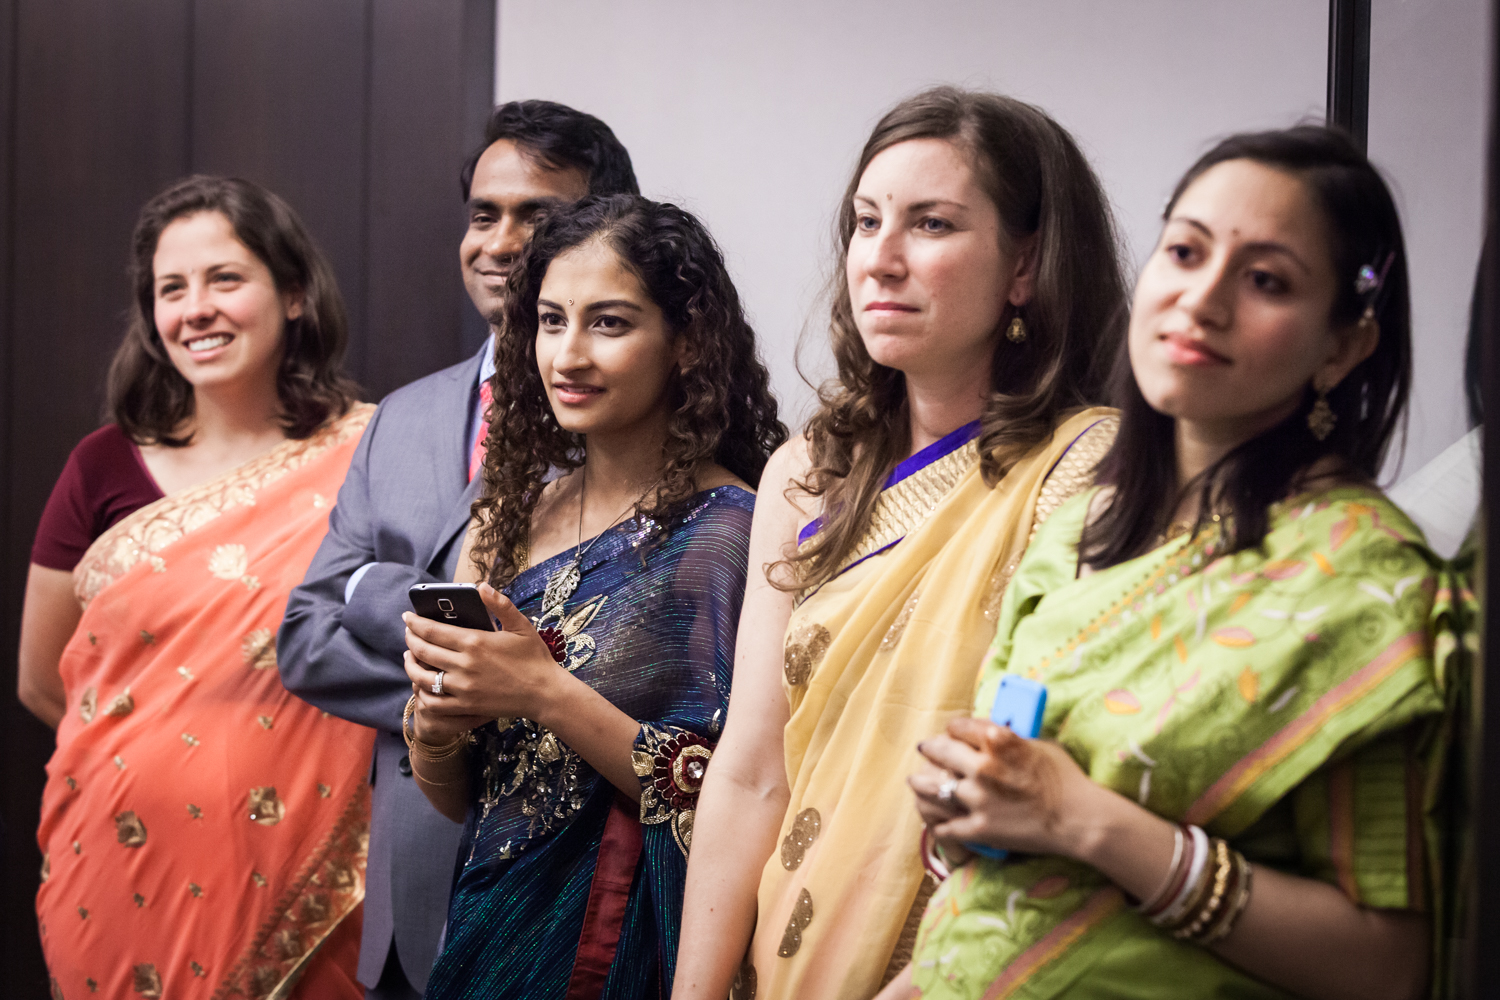 Guests wearing Indian saris listening to ceremony at a NYC City Hall Indian wedding